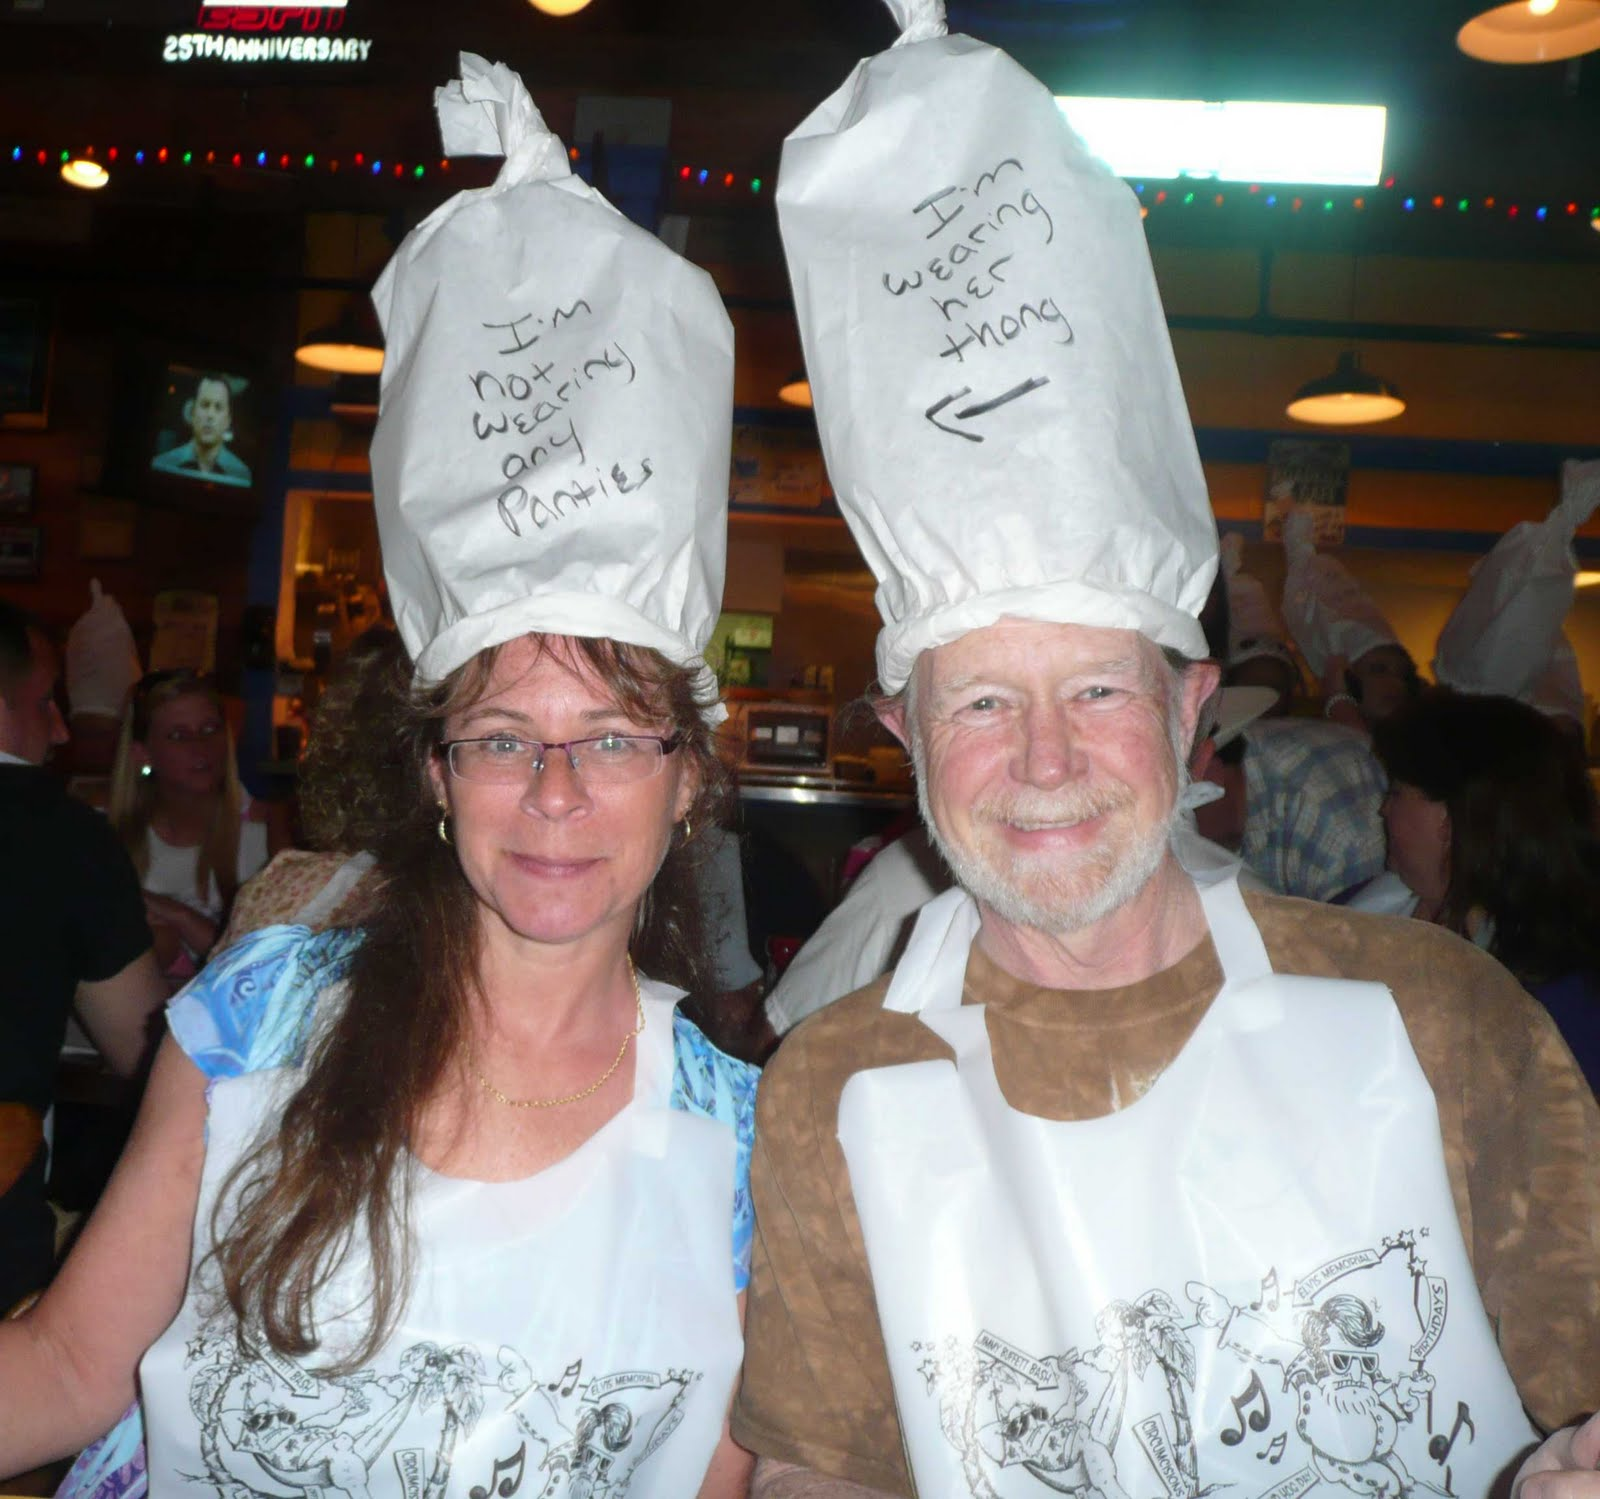 Despising Kidney Cancer: Dick's Last Resort